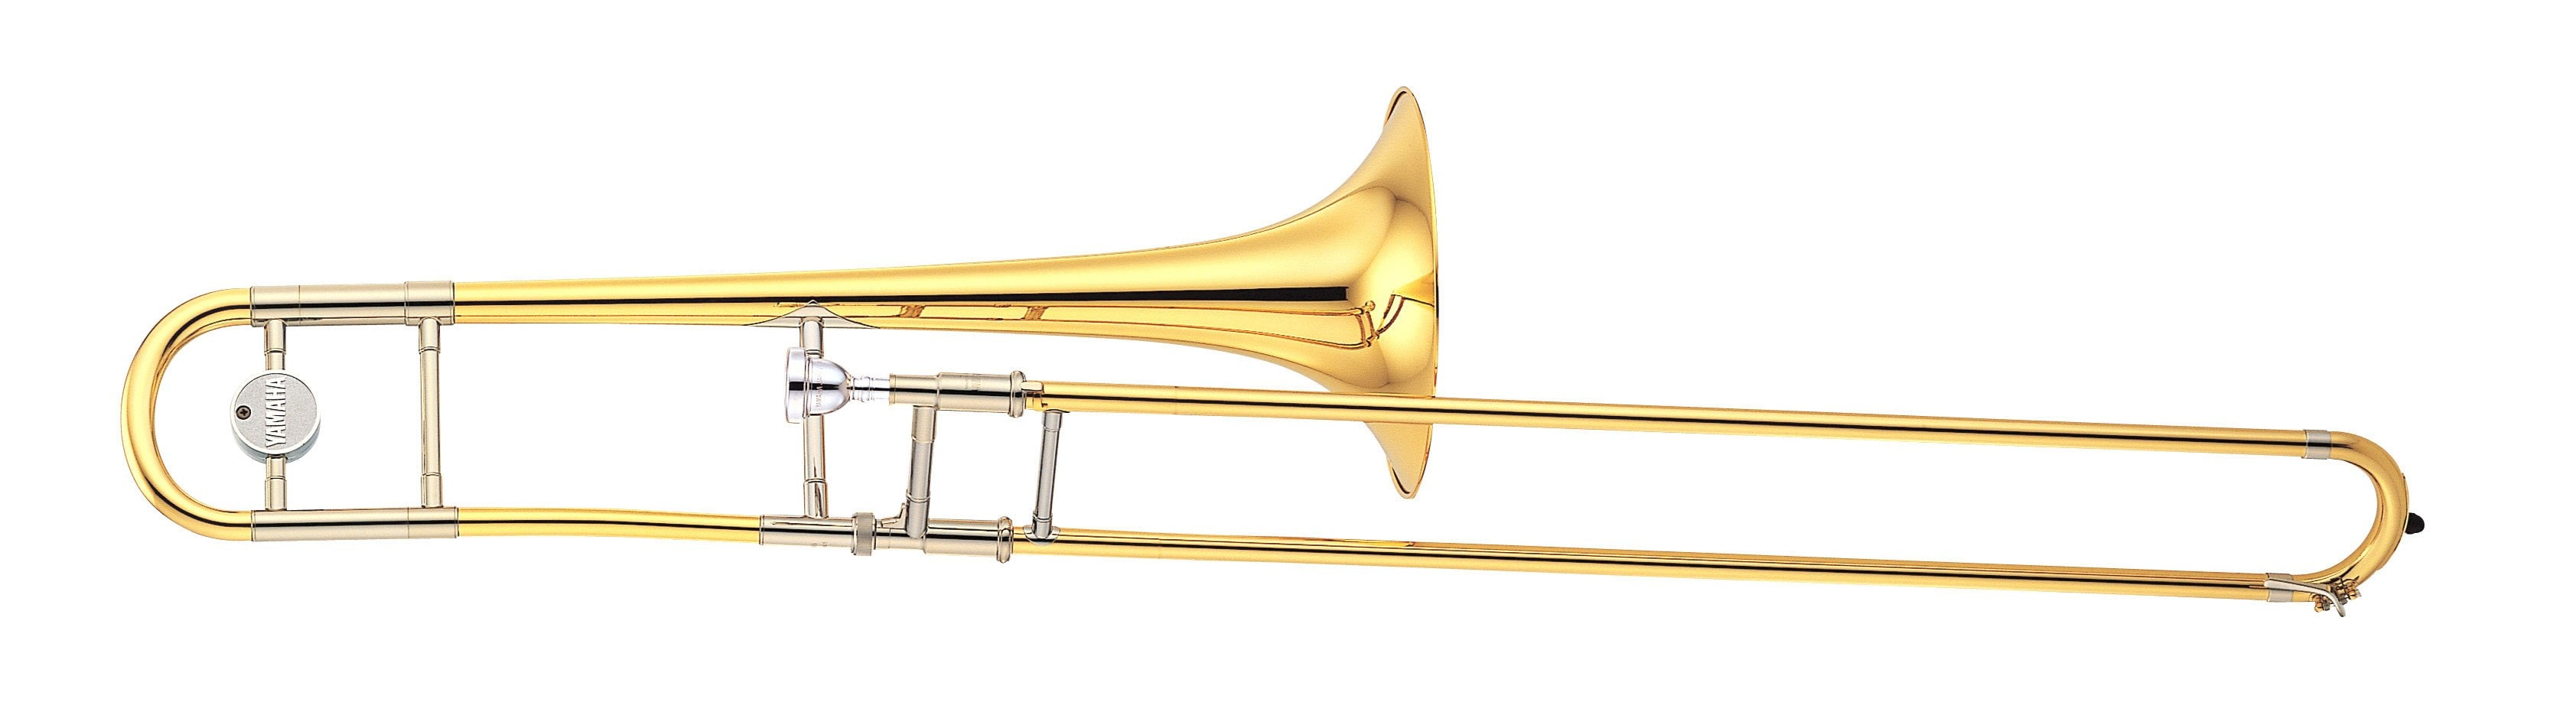 YSL-610/630 - Overview - Trombones - Brass & Woodwinds - Musical Instruments - Products - Yamaha - UK and Ireland